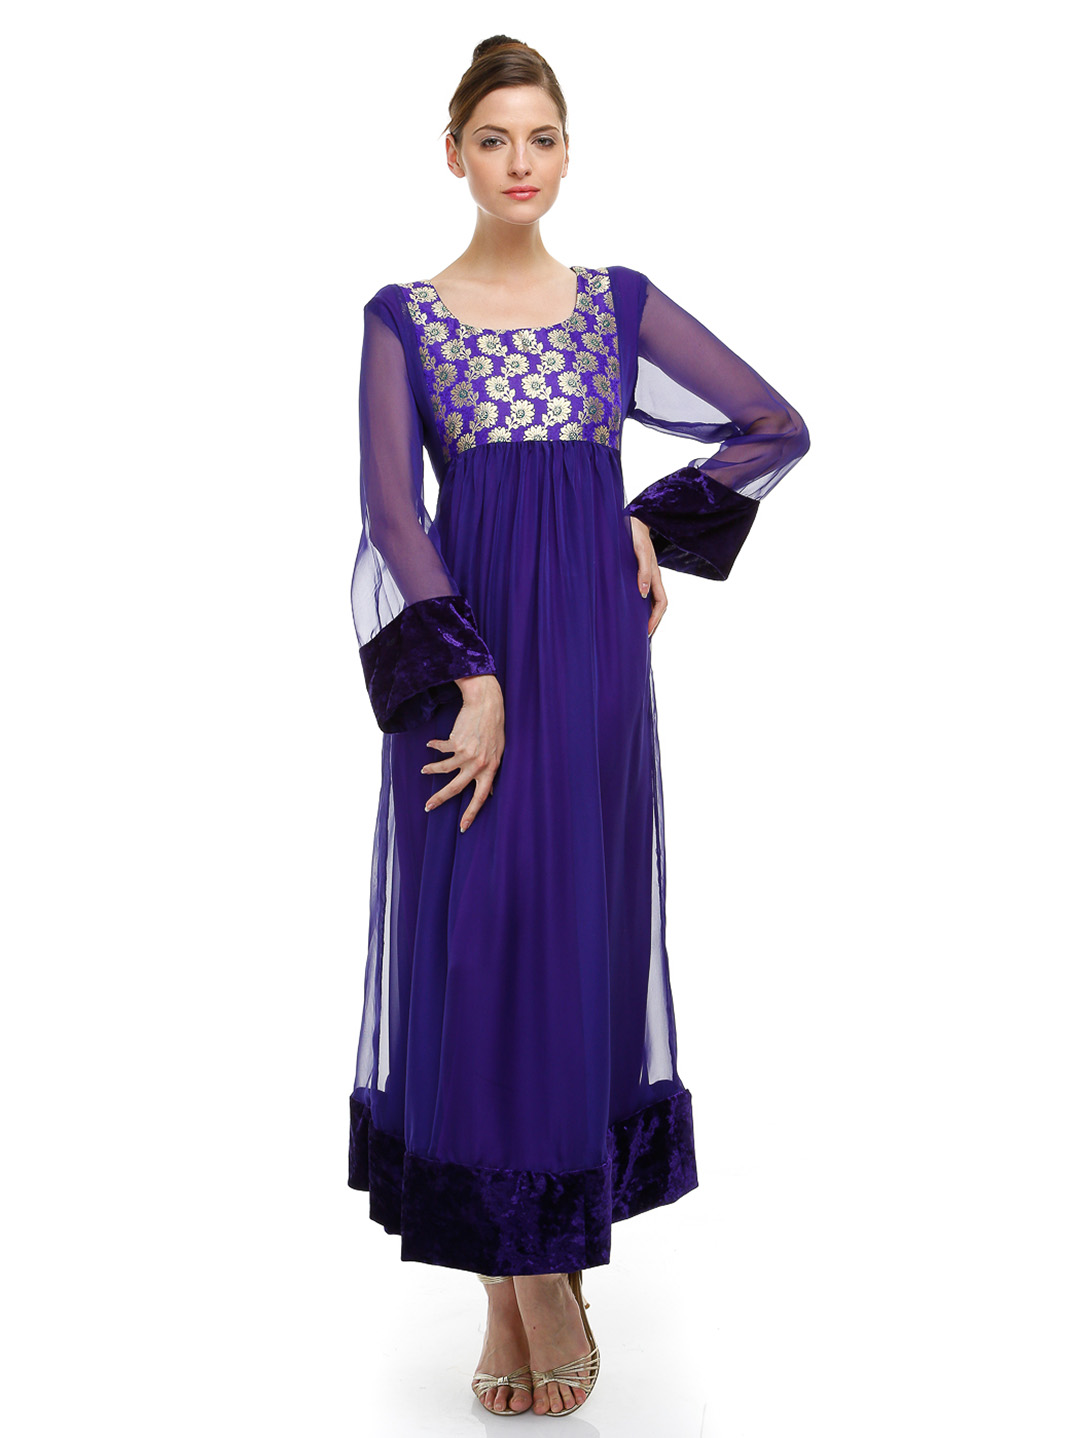 New party wear dresses long frock fashion 2013 2014 asian clothing Fashion style in pakistan 2013